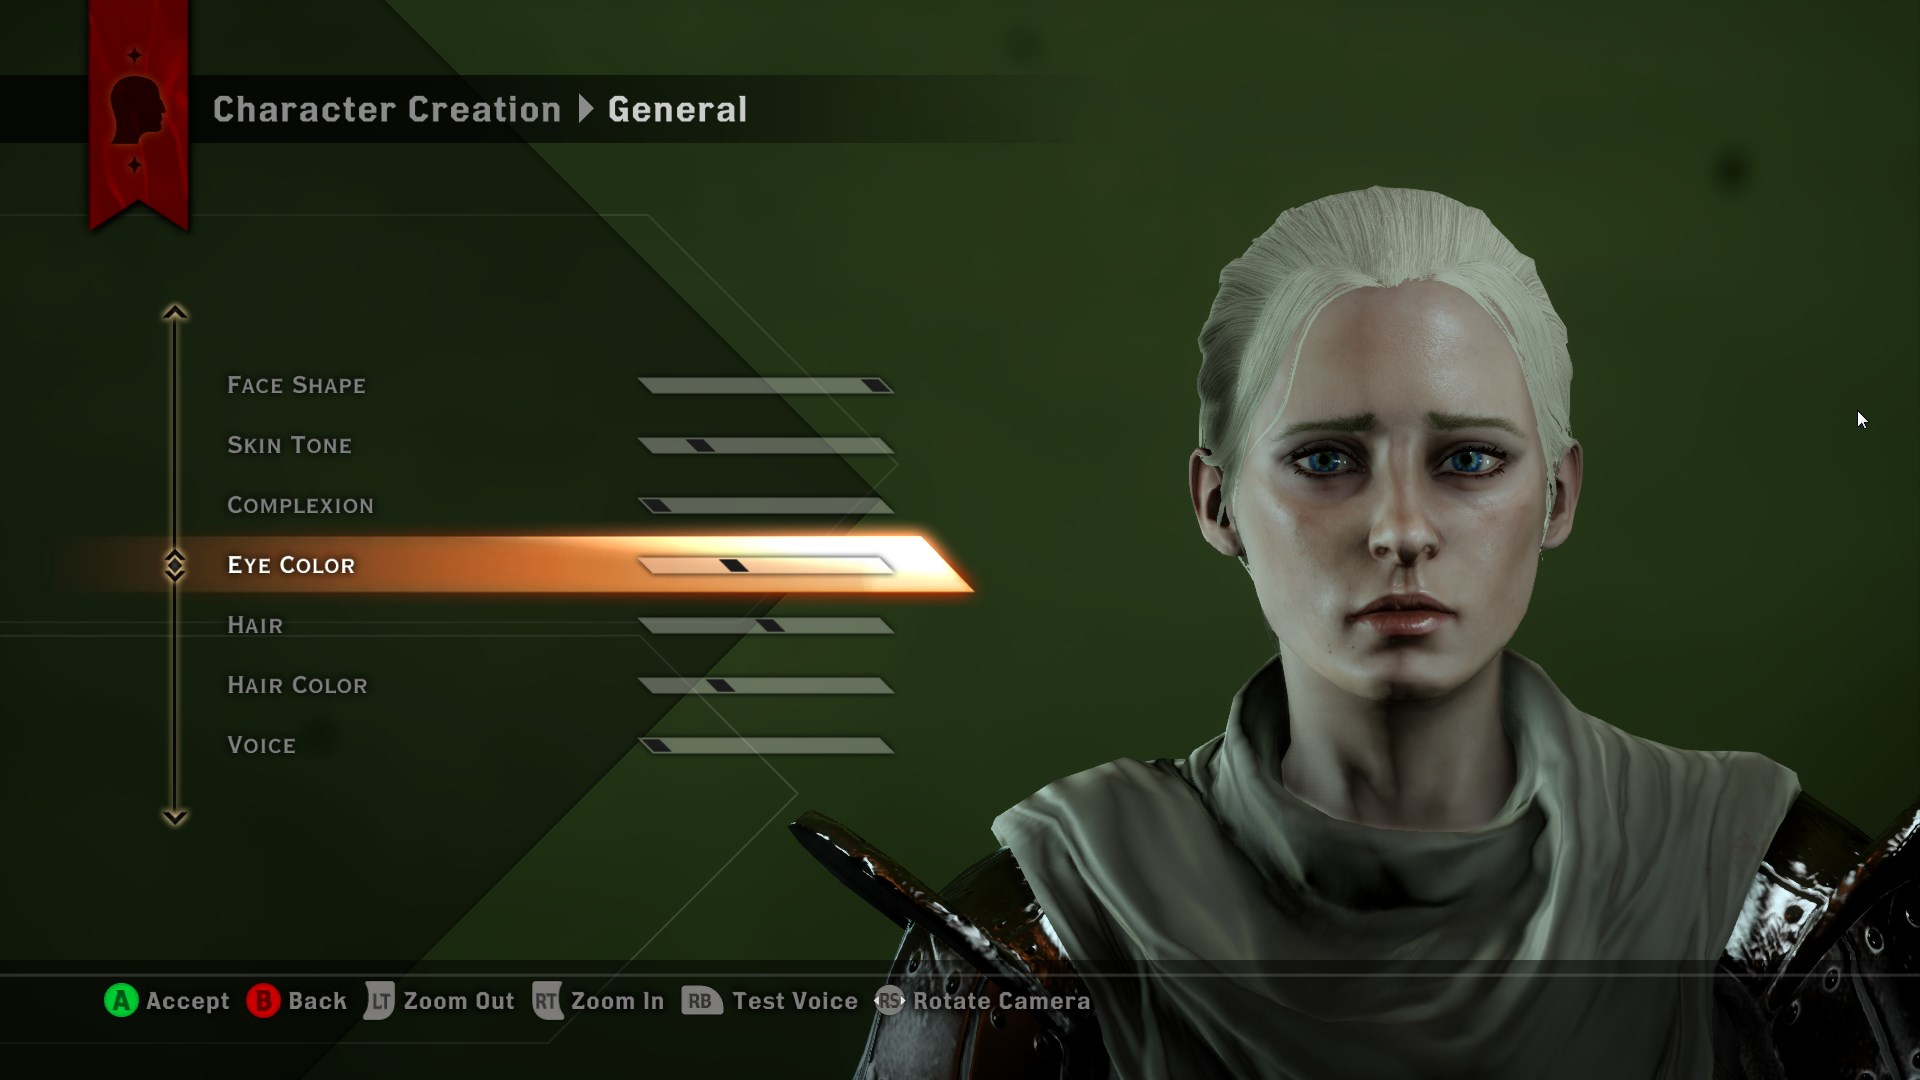 Game Of Thrones Daenerys Targaryen Recreated In Dragon Age